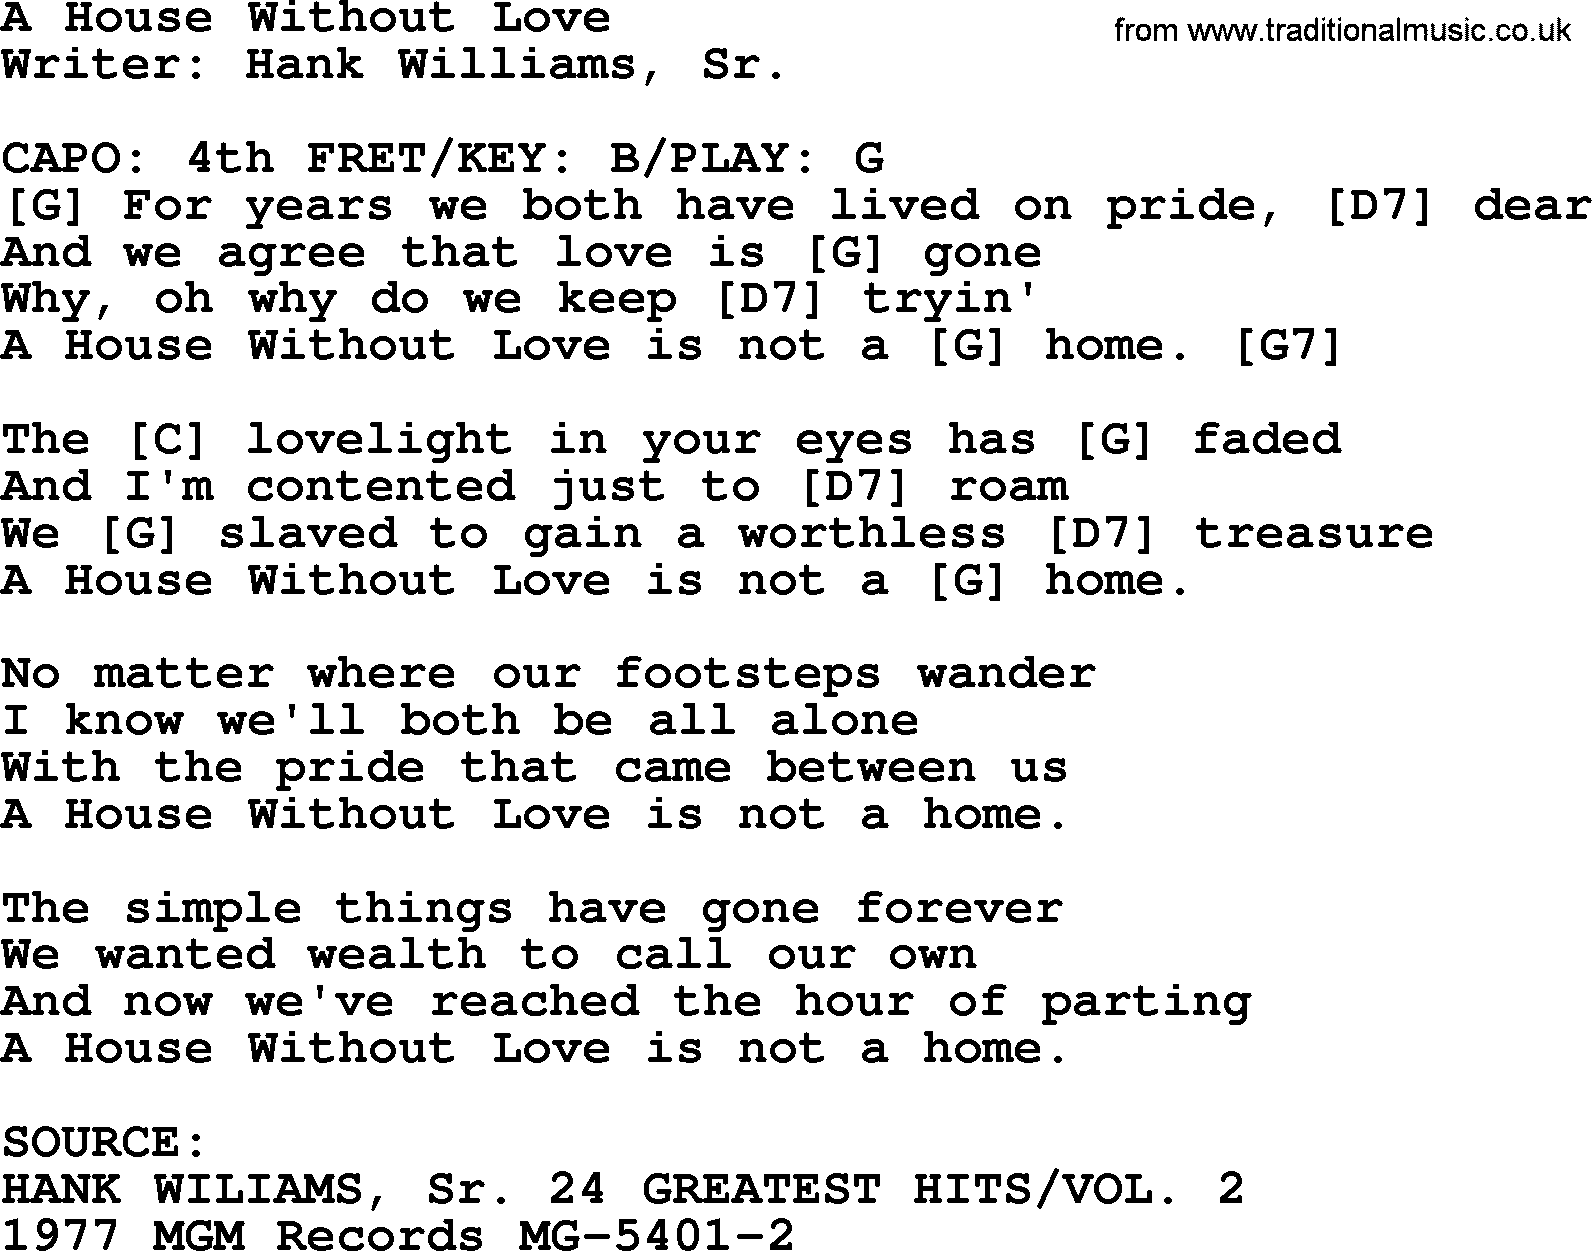 Hank Williams song A House Without Love lyrics and chords